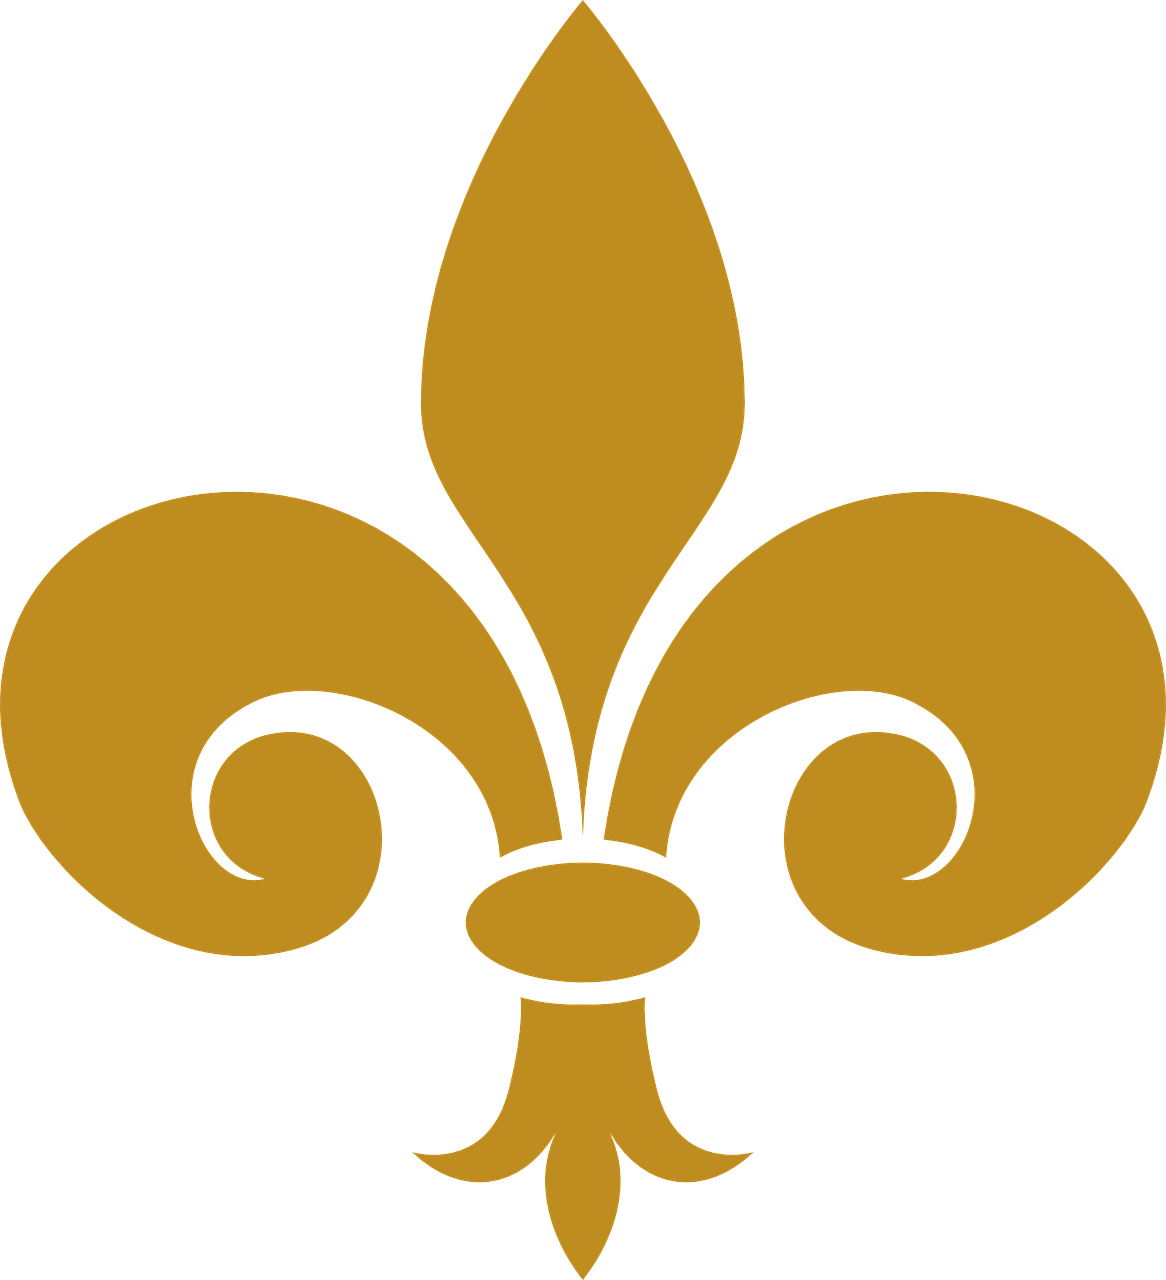 fleur de lis emblem decoration free photo